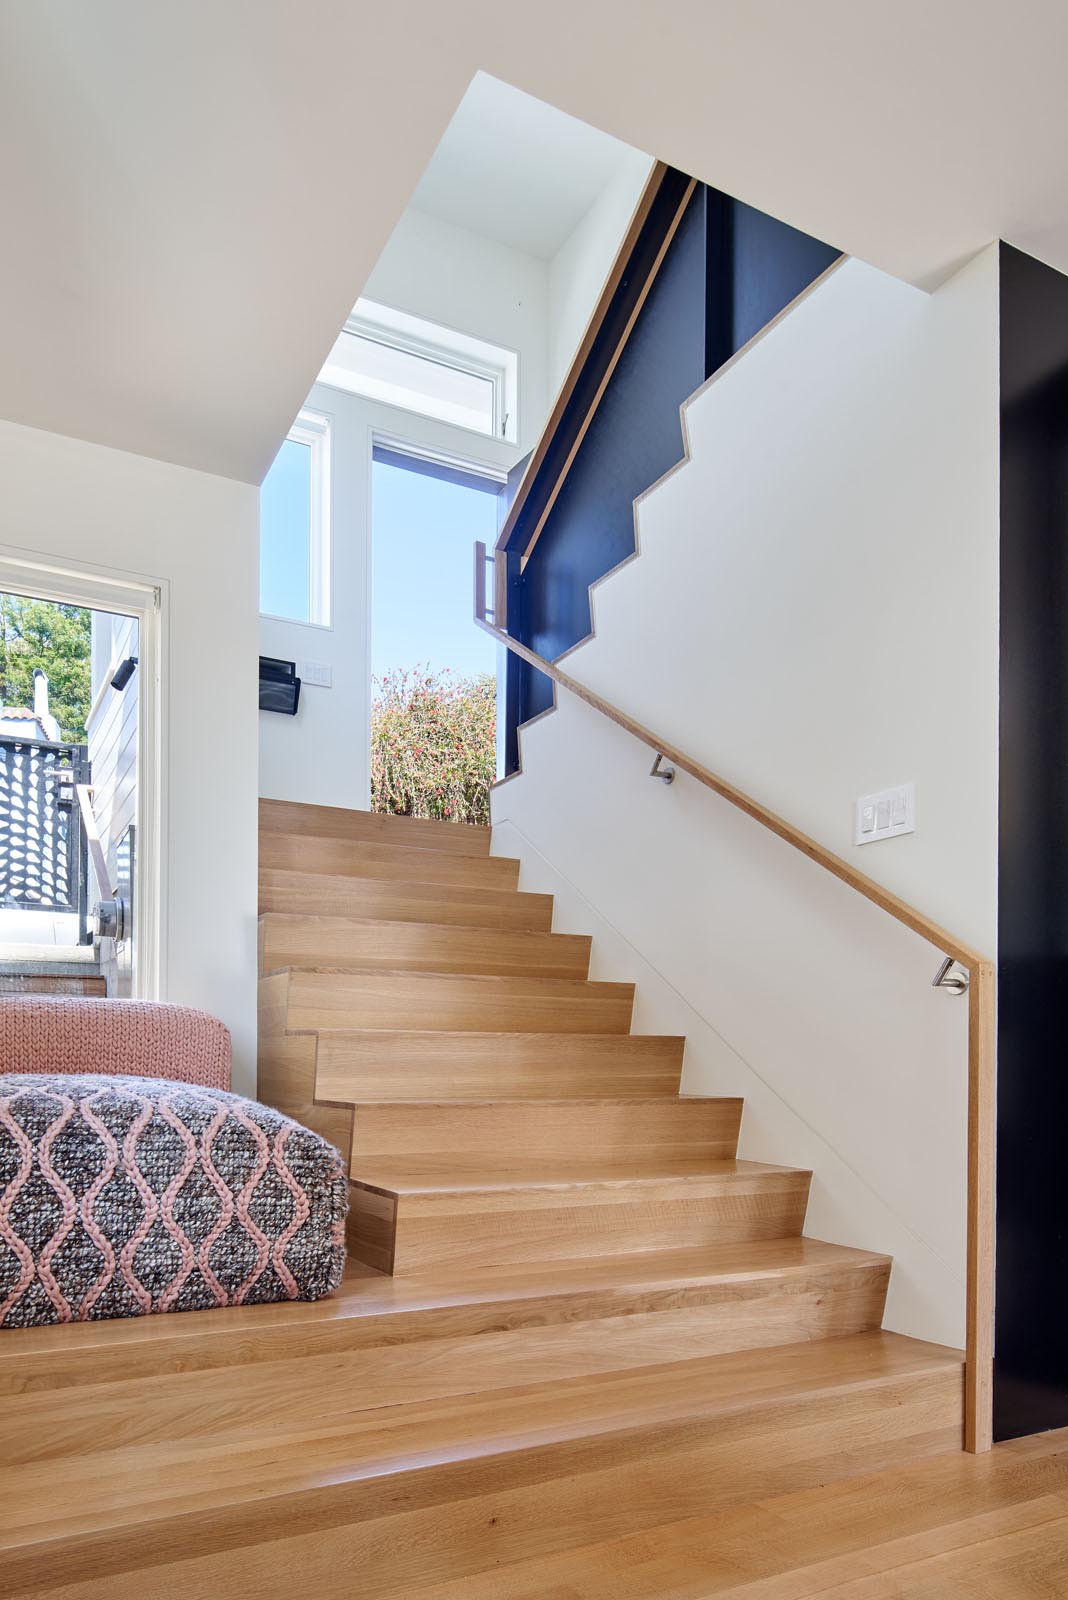 The contemporary entryway and wood stairs of a split-level home.